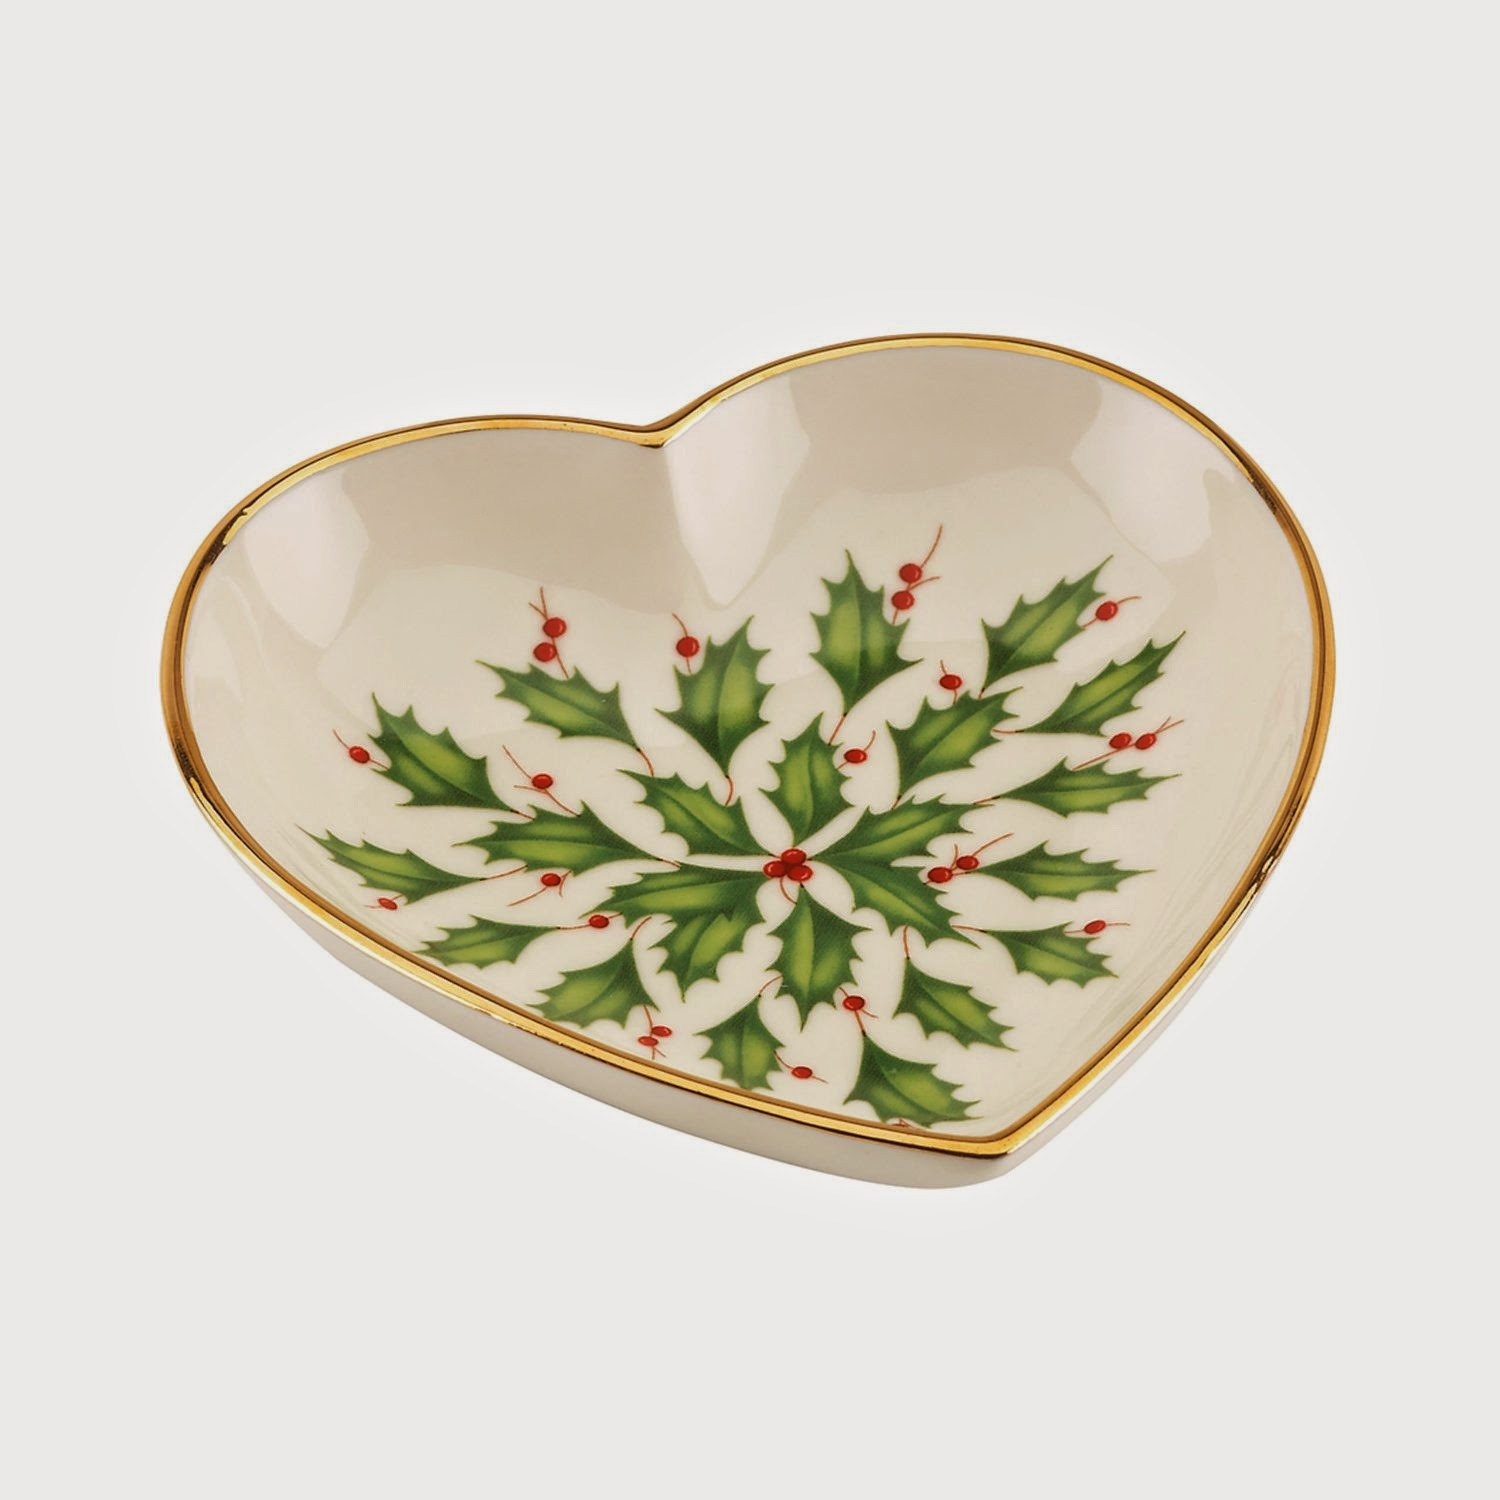 Lenox Christmas Candy Dish  The Things of Life Lenox Christmas Candy Dishes